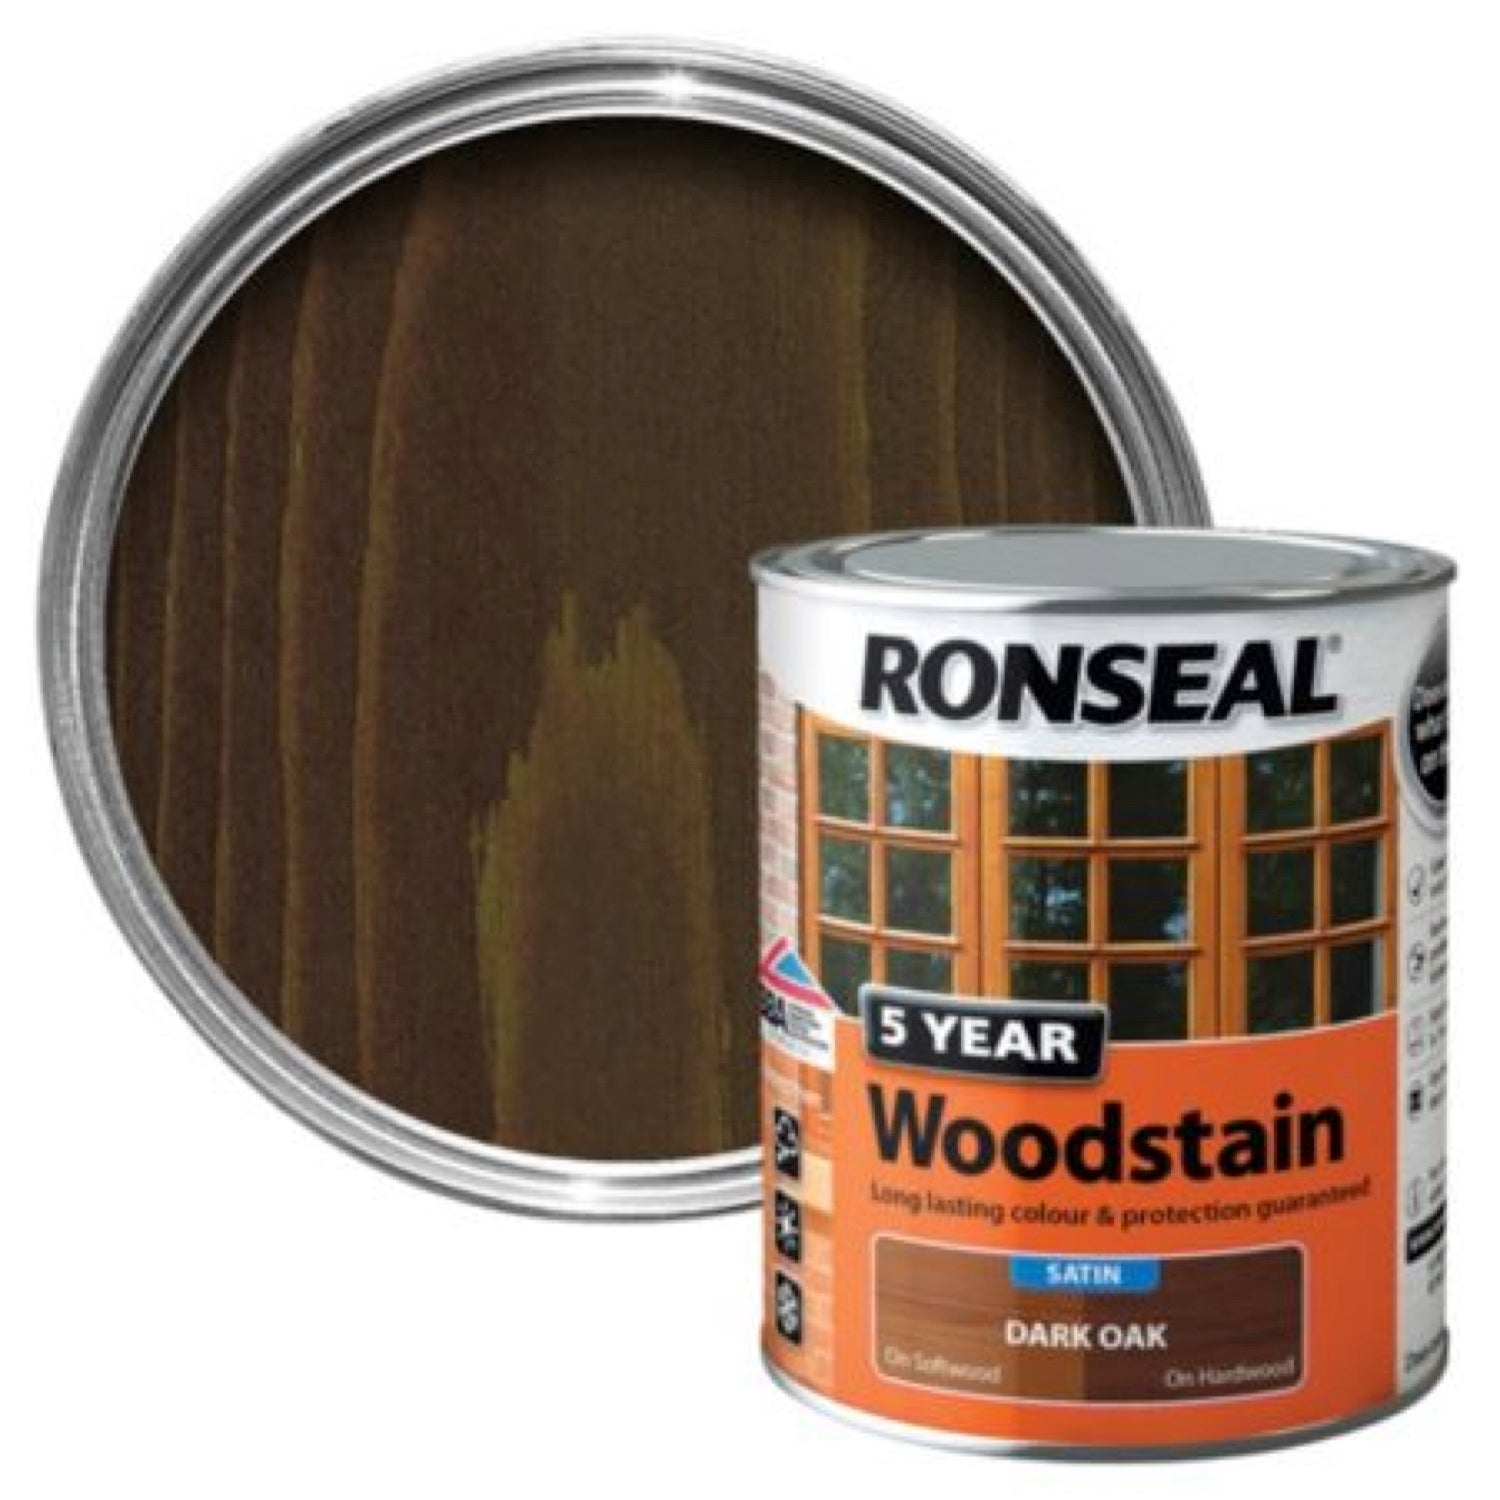 Ronseal 5Yr Woodstain Dark Oak 250ml